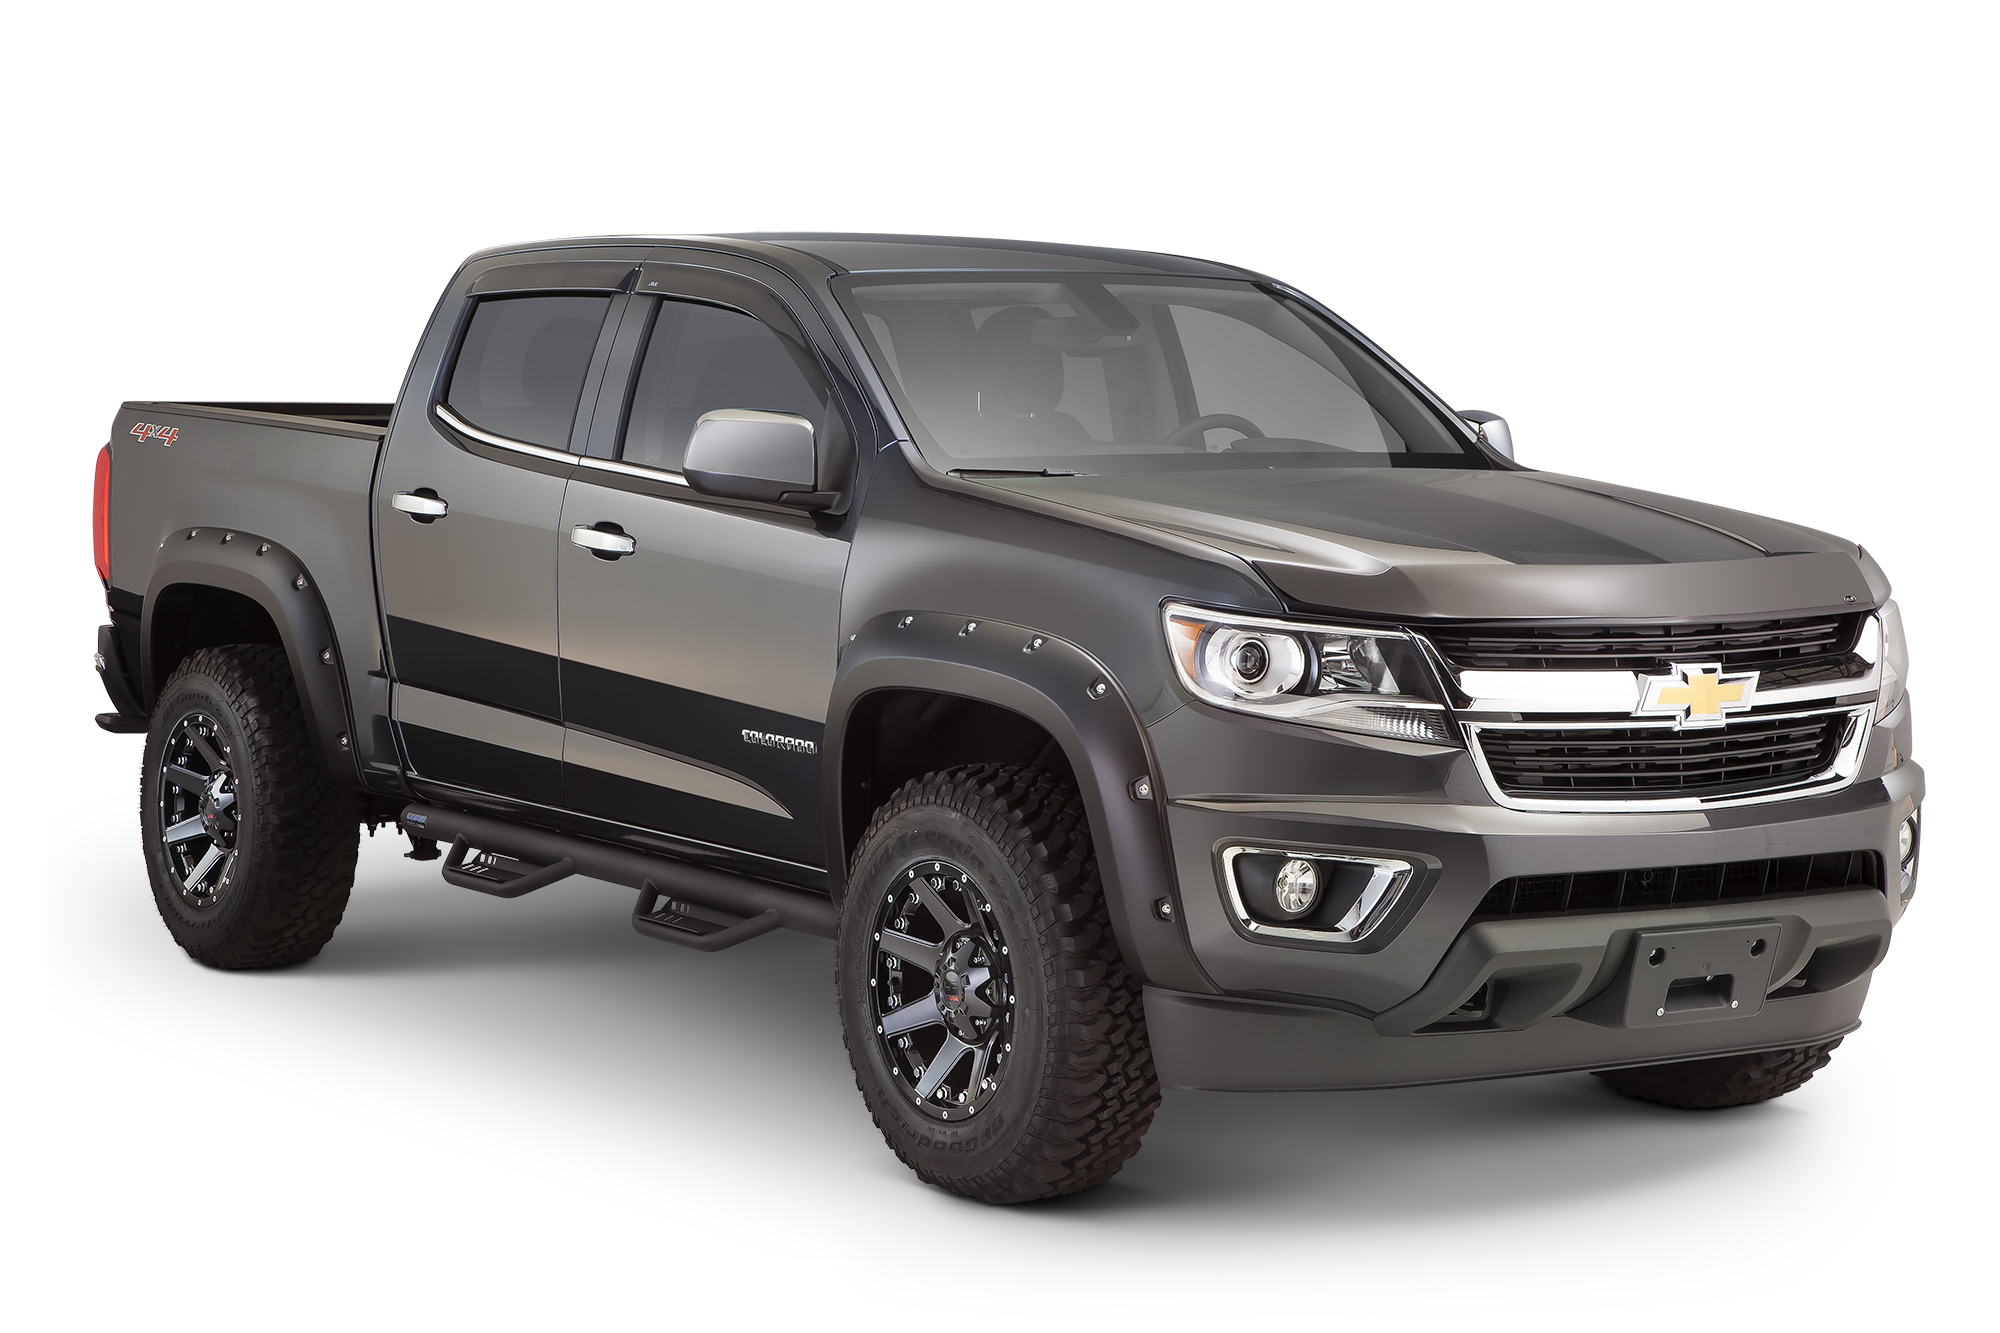 Bushwacker Releases Pocket Style Fender Flares For 2015